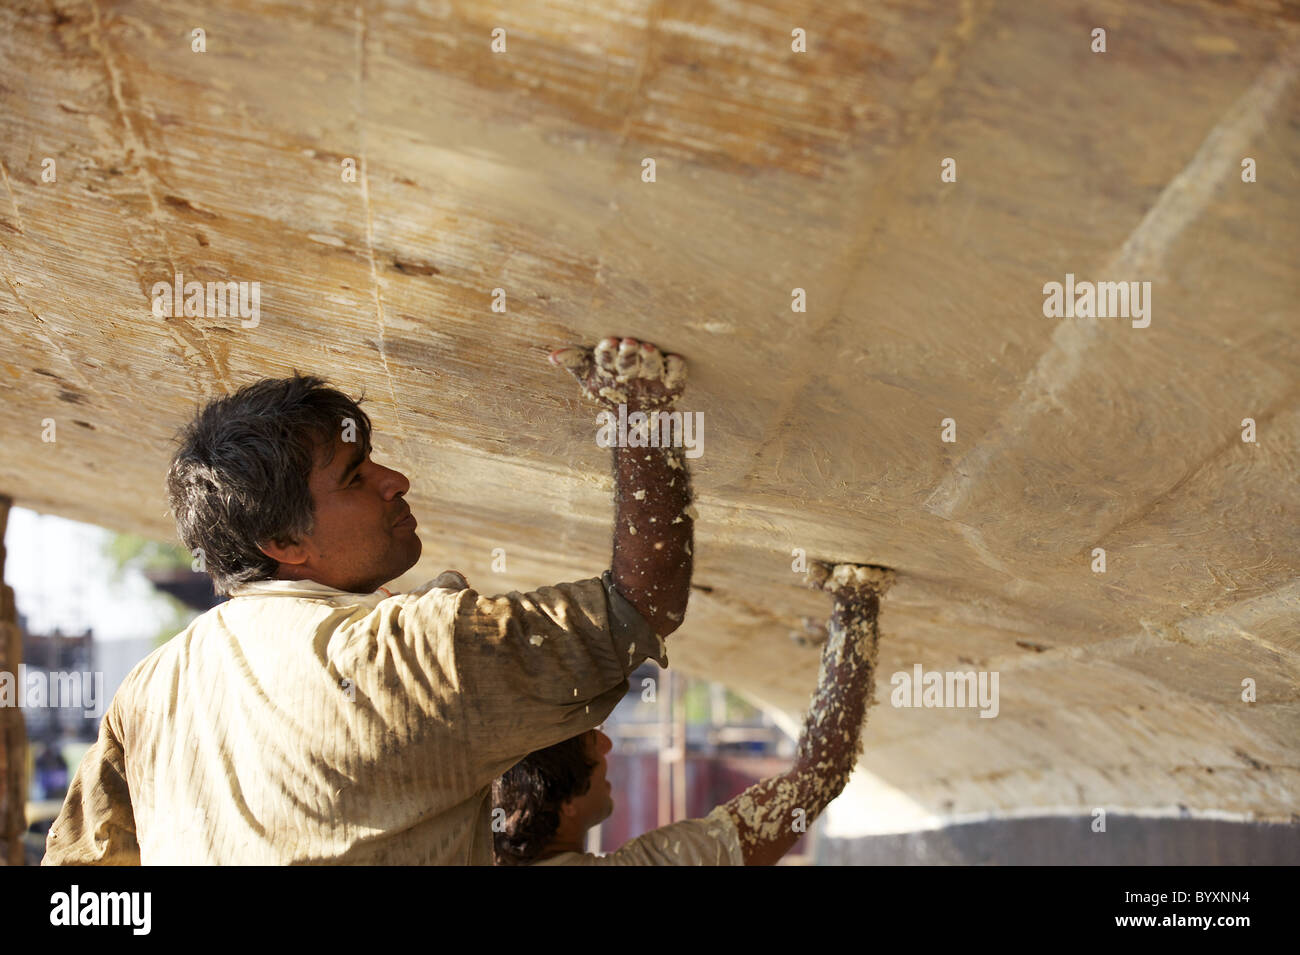 Two workers apply a sealer to the underside of a dhow in the Jaddaf boatyard, Dubai, UAE - Stock Image